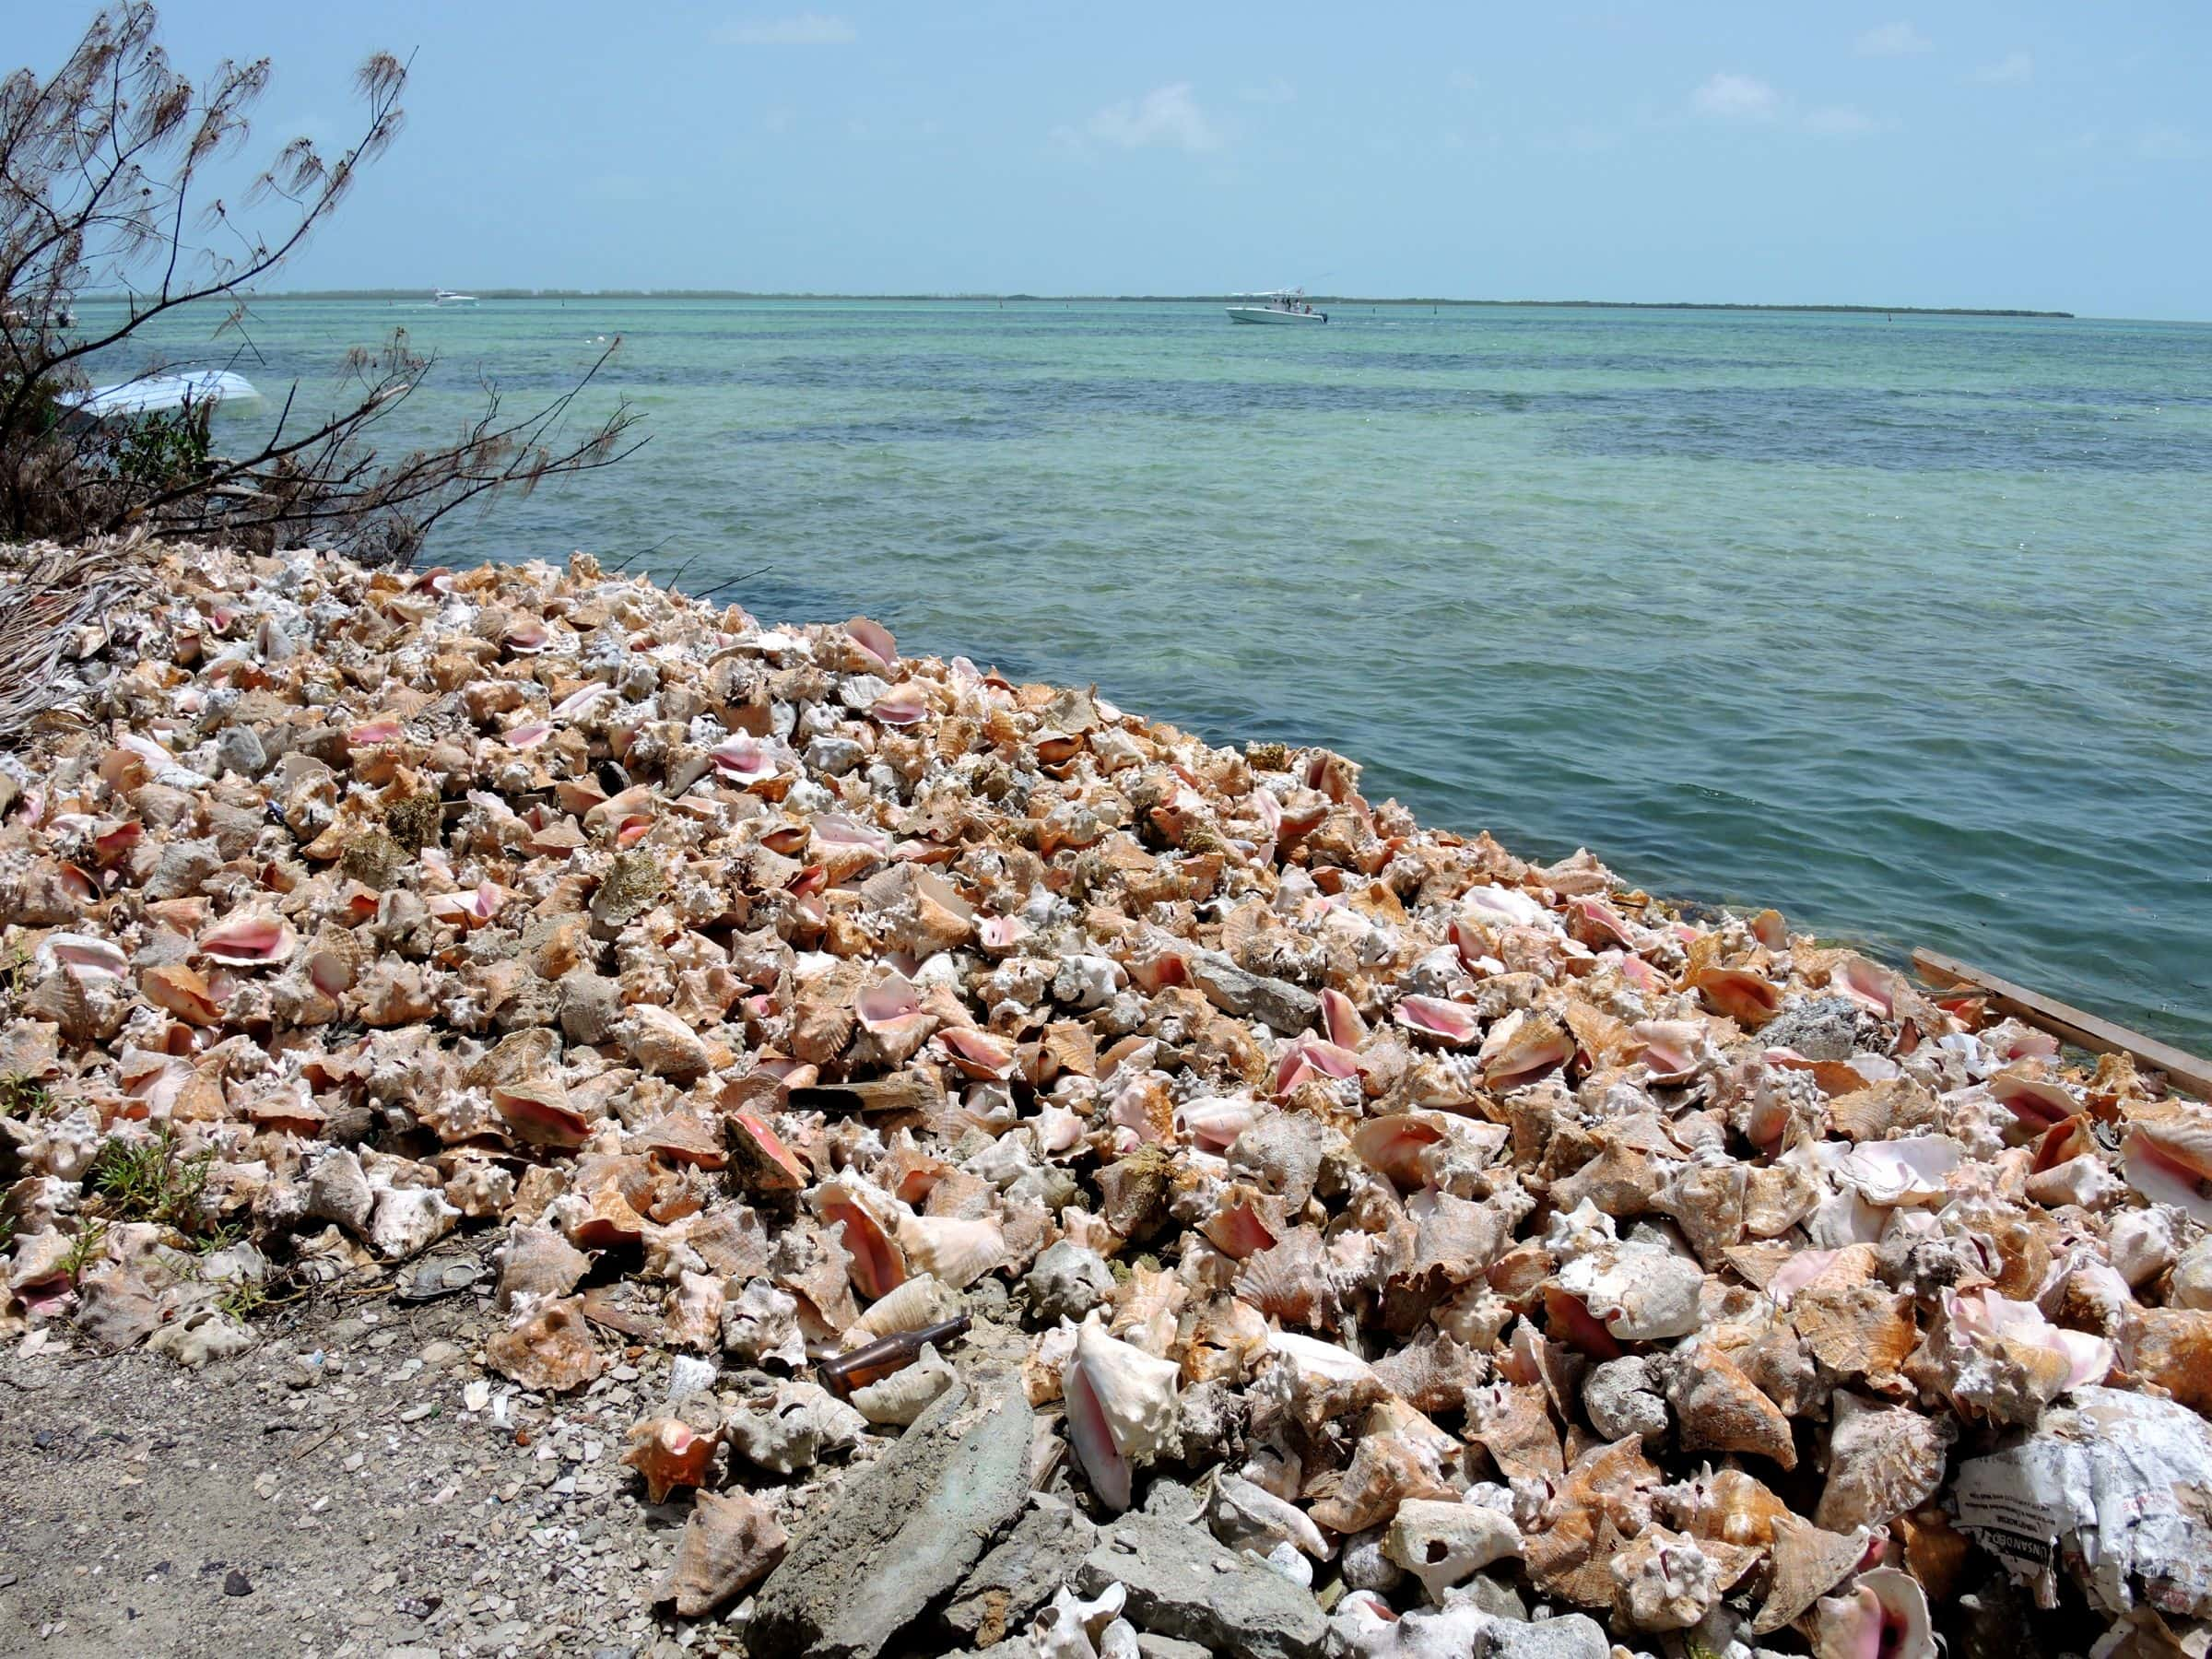 Jamaica Defence Force Mum On Internal Review Of Coke Raid moreover Watch besides On Site Bahamas Where To Find The Best Conch Salad In Bimini also Playa Del Carmen Resorts besides Hurghada. on trinidad and tobago resorts